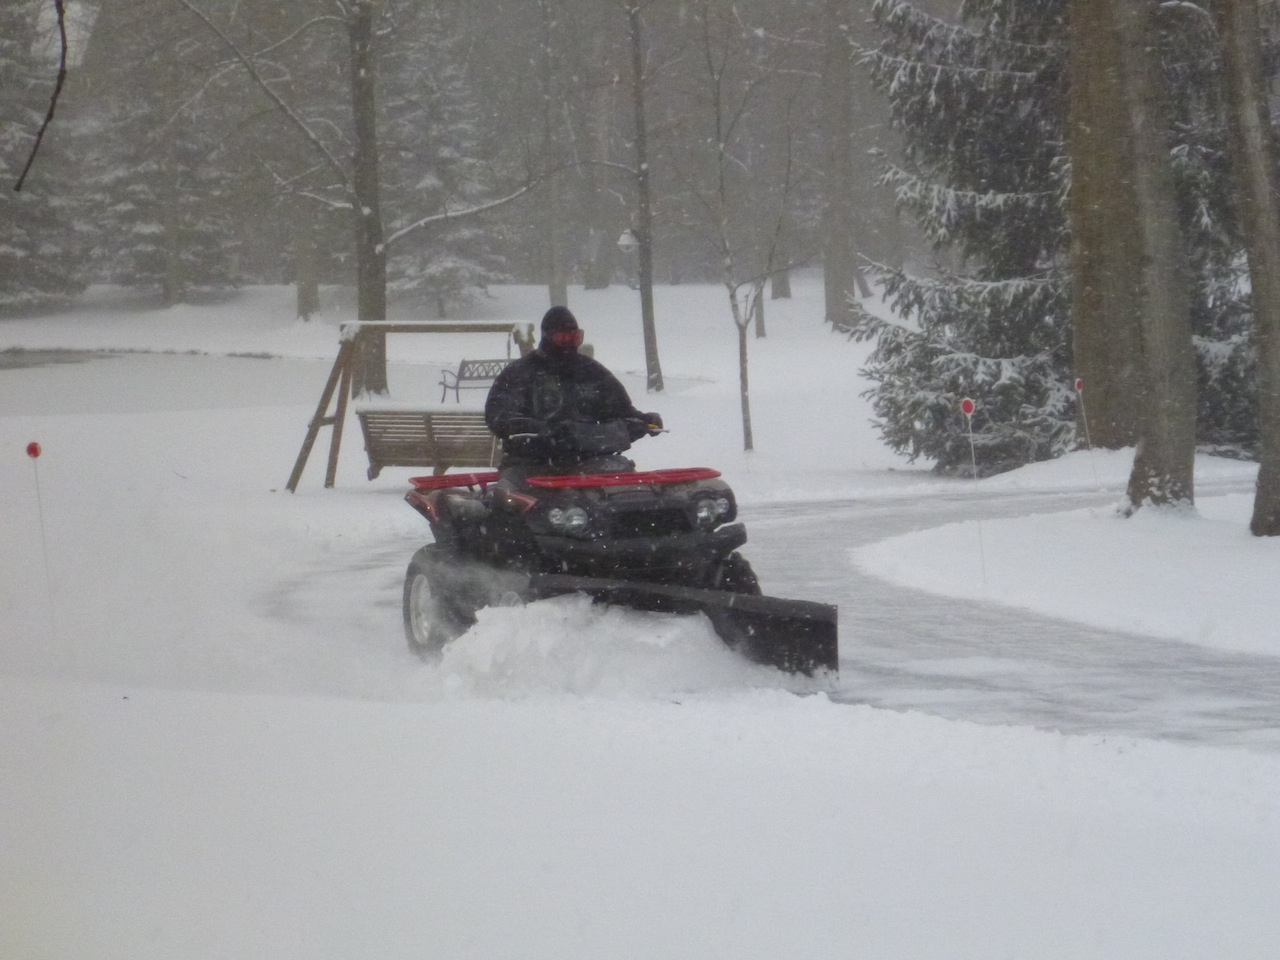 David Plowing Our Driveway